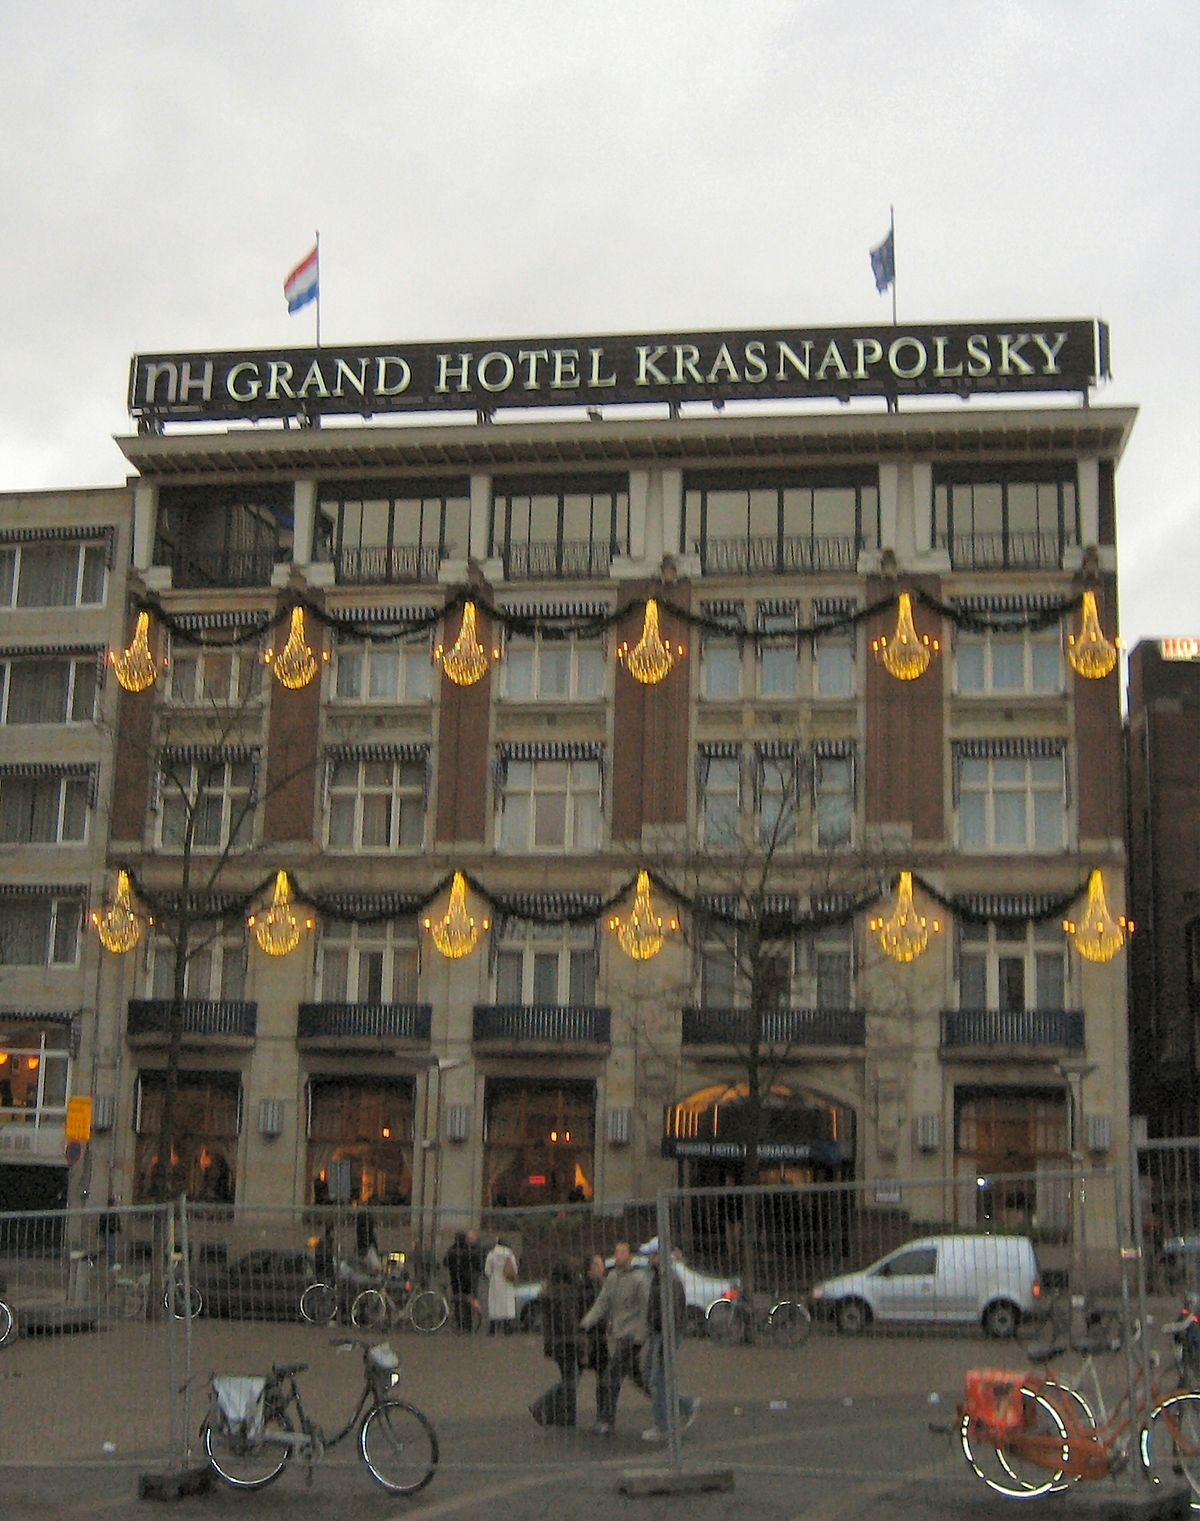 Nh grand hotel krasnapolsky wikip dia for Hotel a amsterdam economici